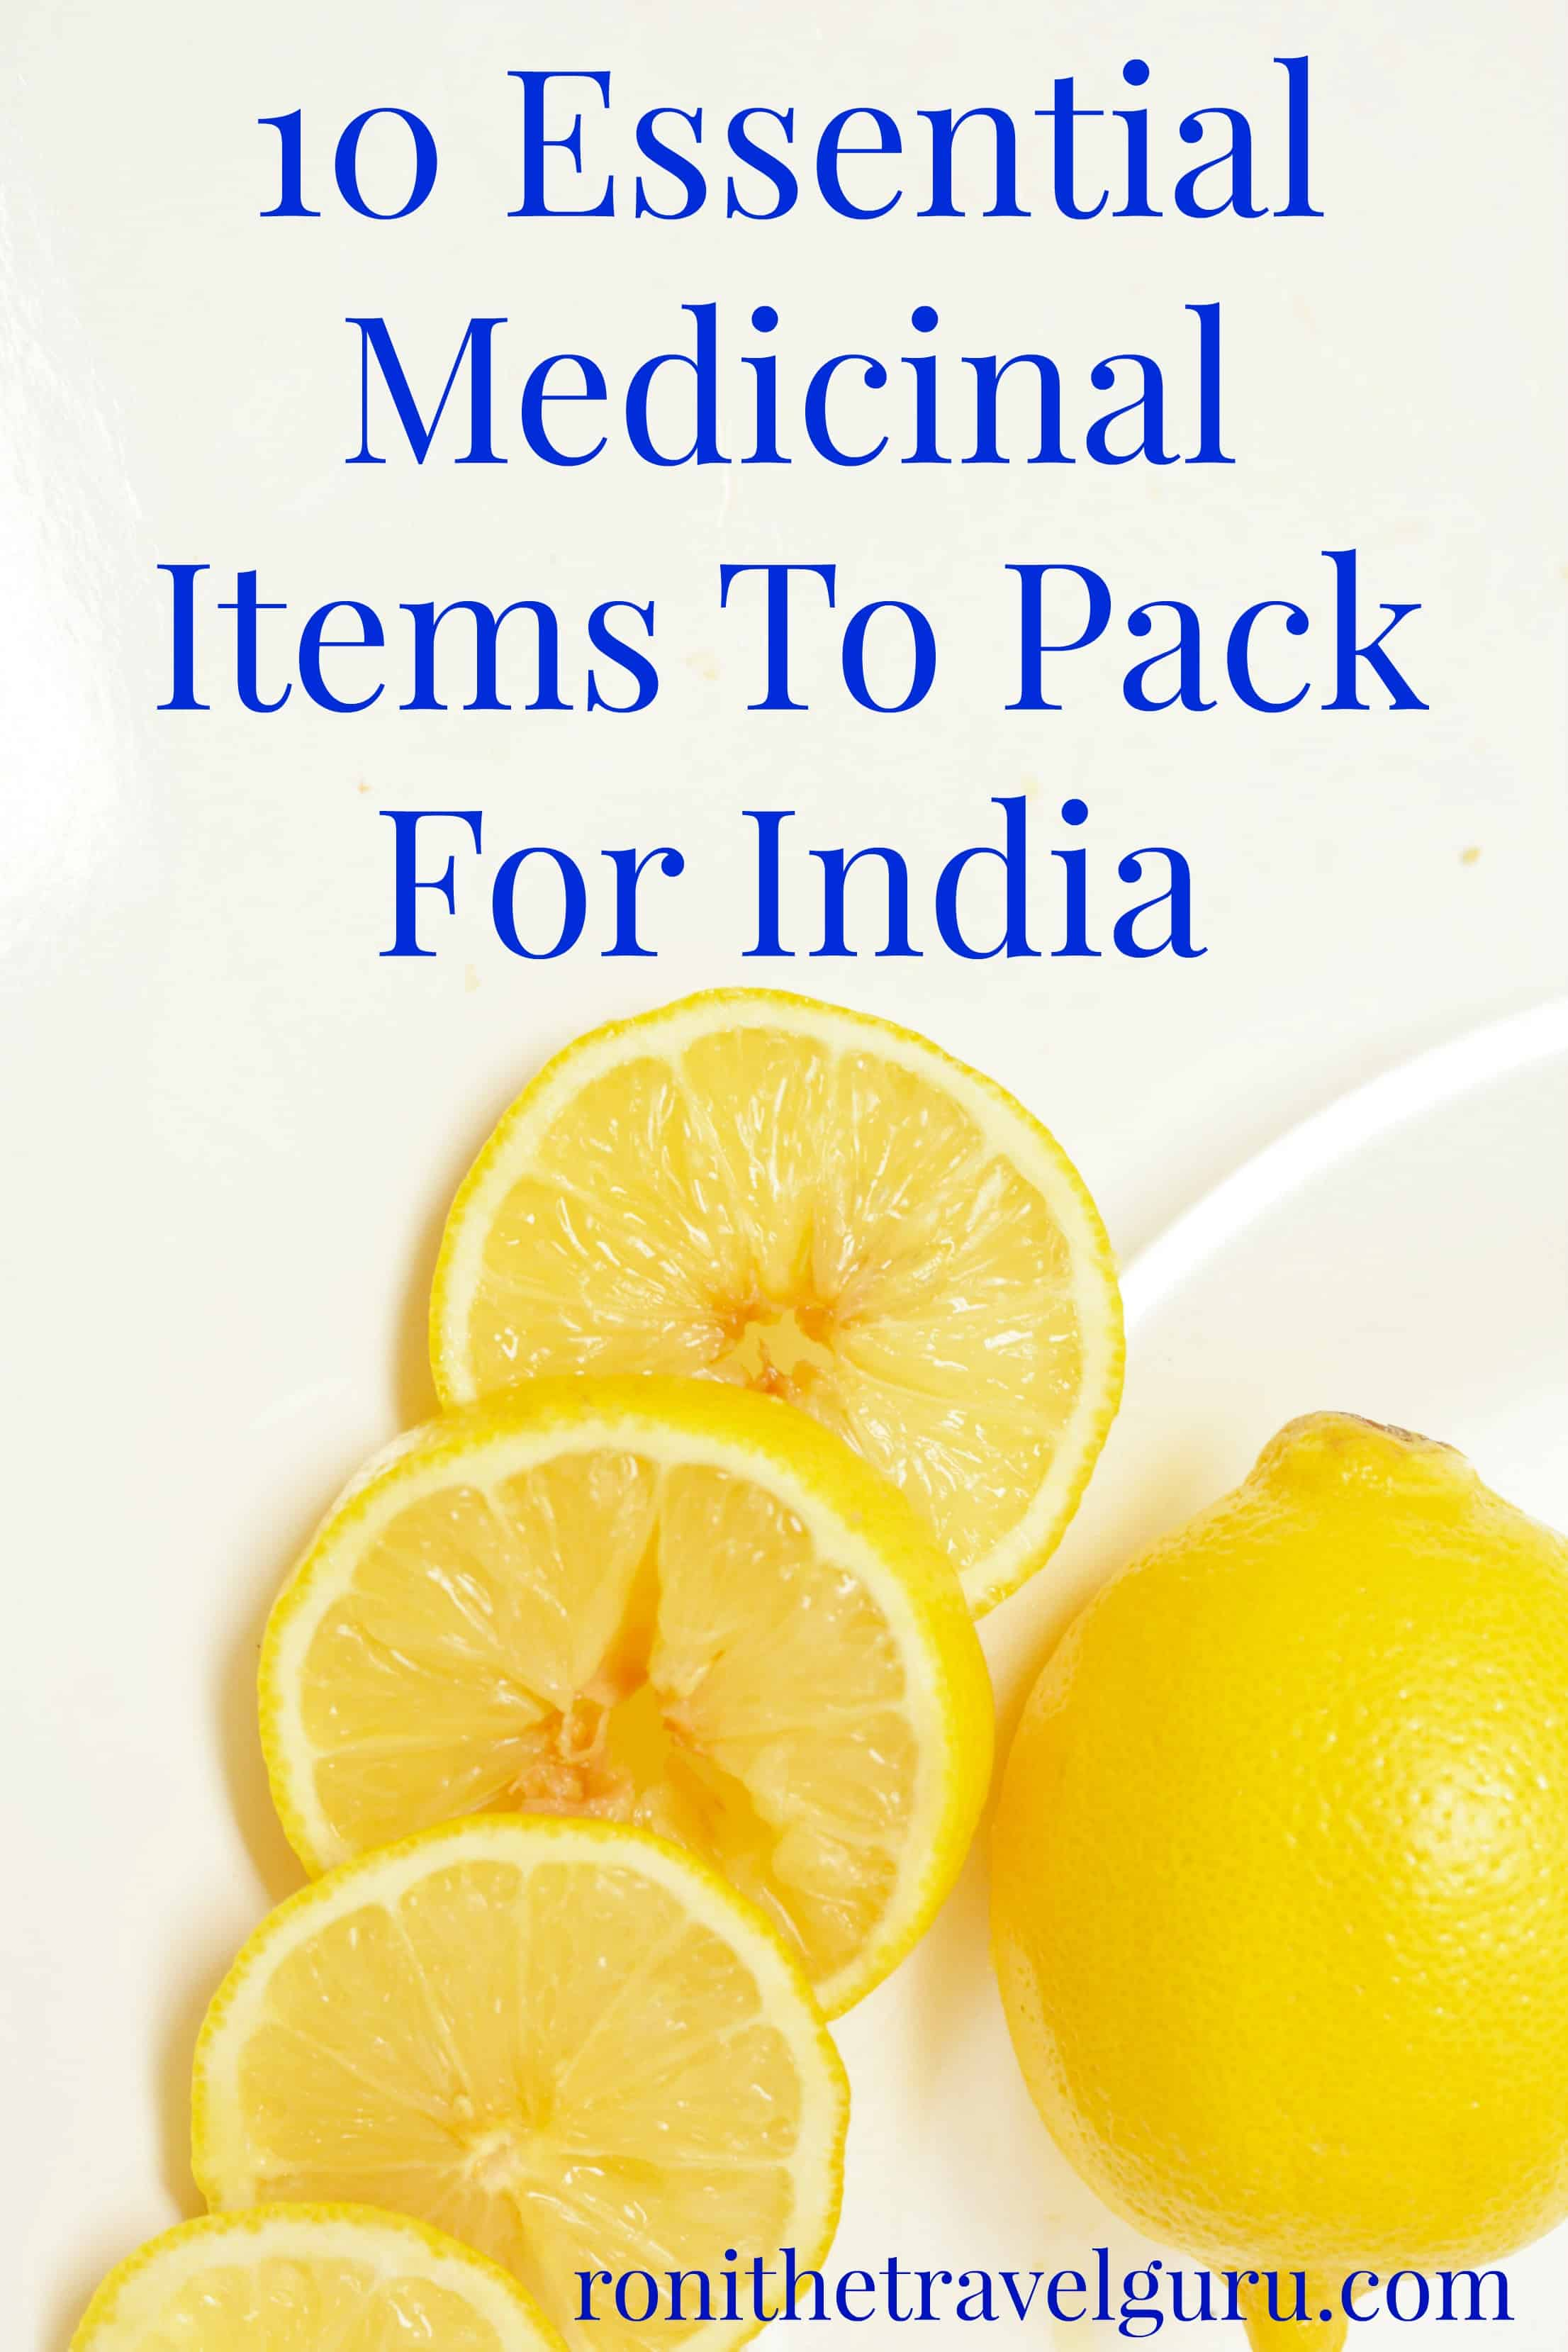 10 essential medicinal items to pack for India